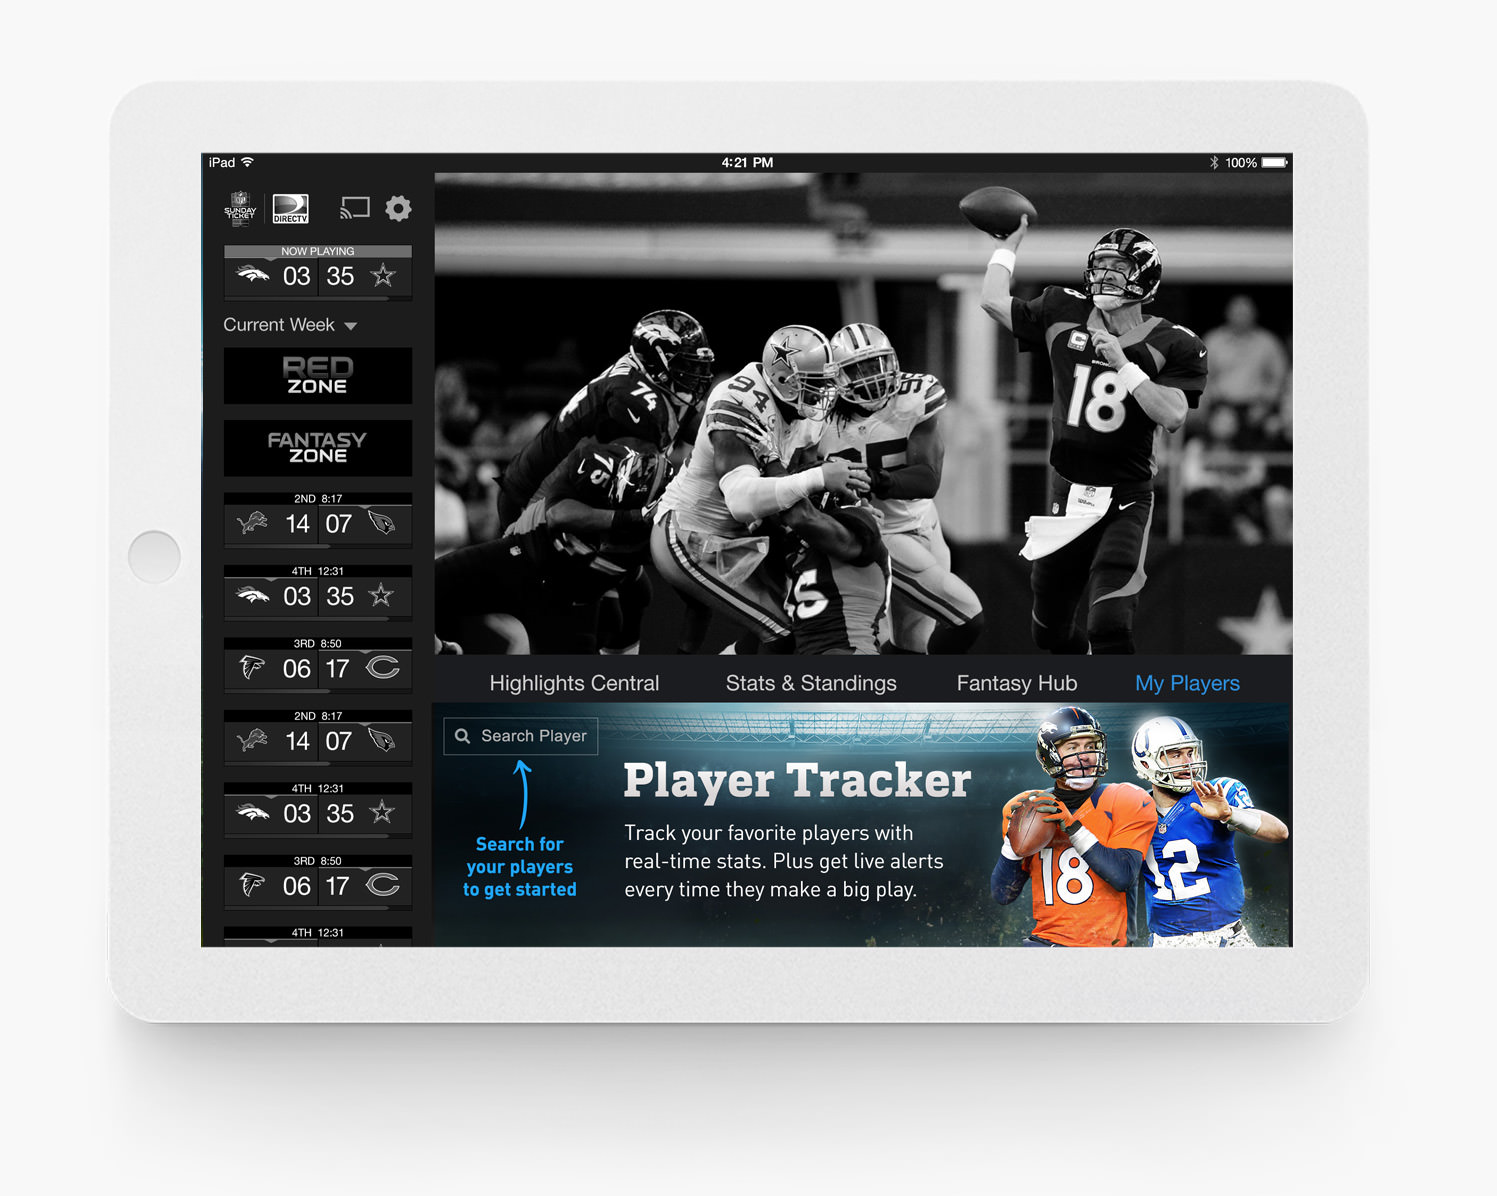 ent_mktg_nfl_ipad_playertracker.jpg